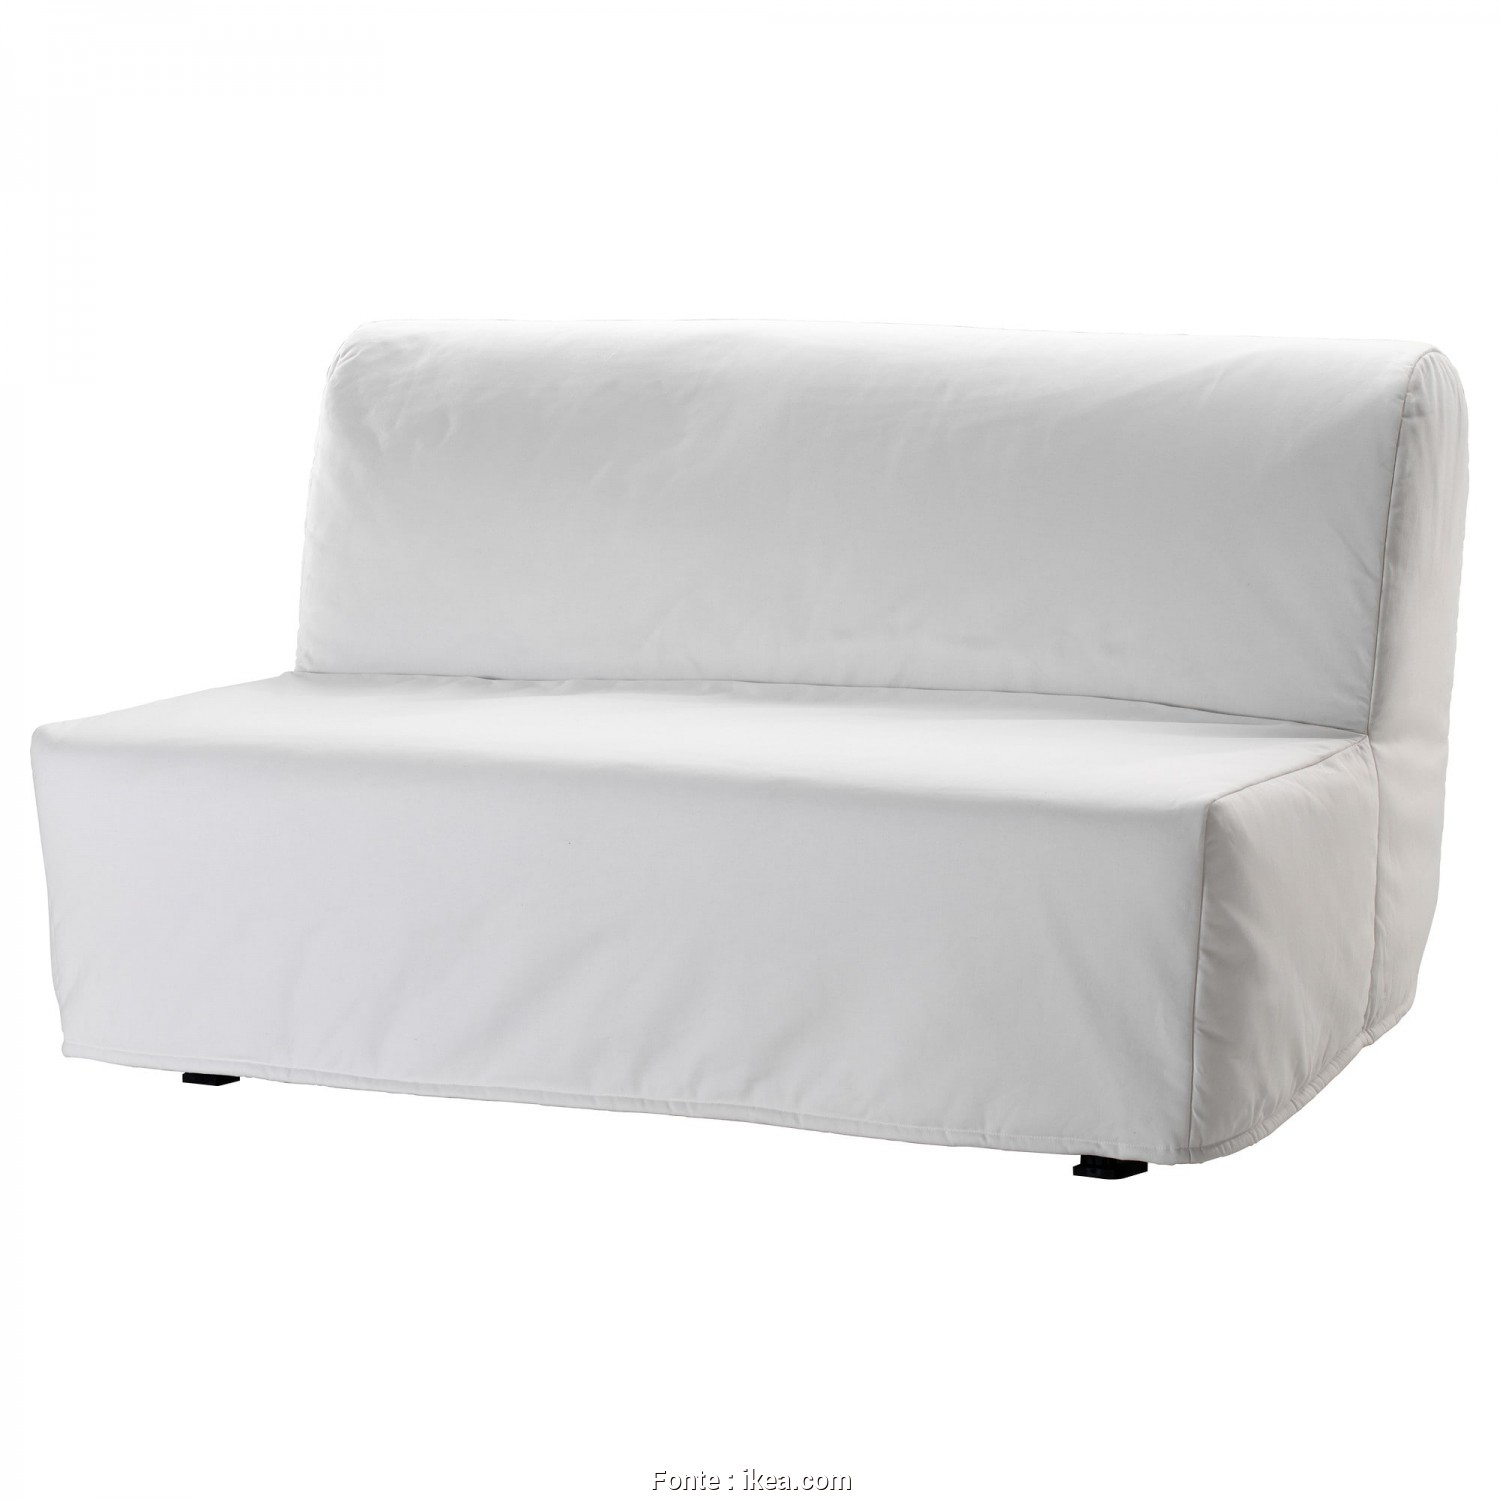 Futon Ikea Grankulla Prix, Originale IKEA LYCKSELE HÅVET Two-Seat Sofa-Bed Readily Converts Into A, Big Enough